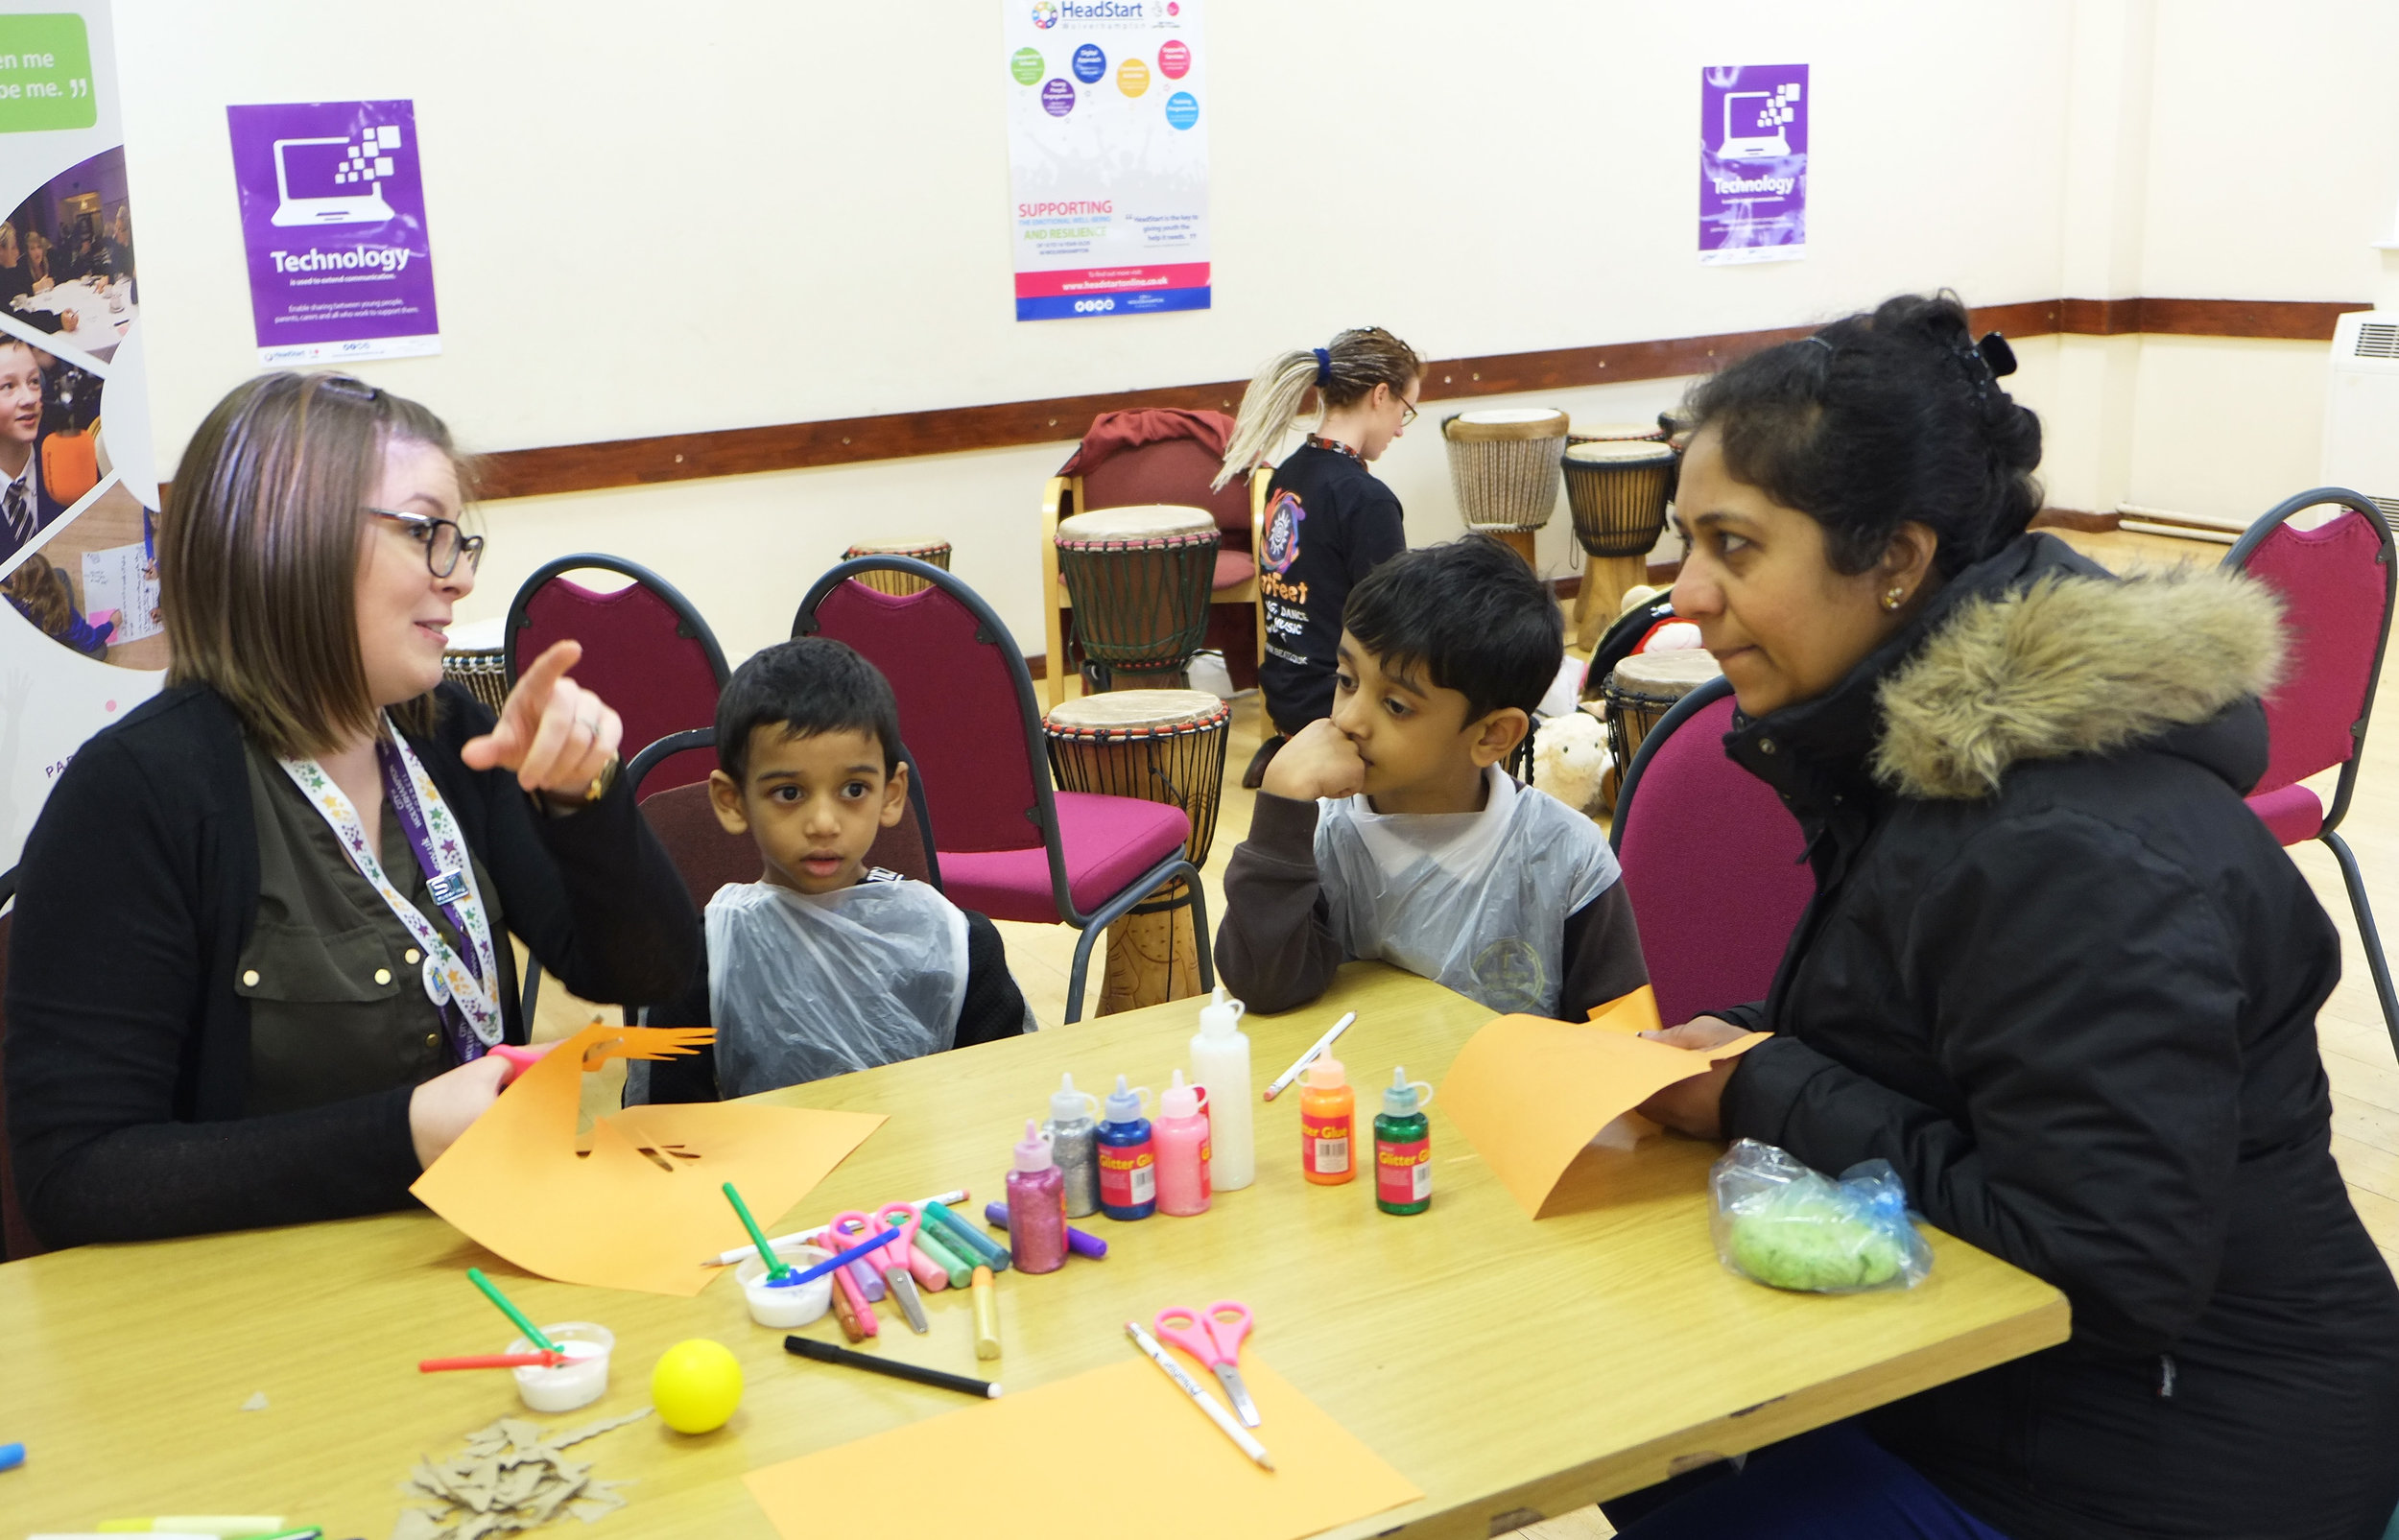 19HS Eastfield Community open day.jpg